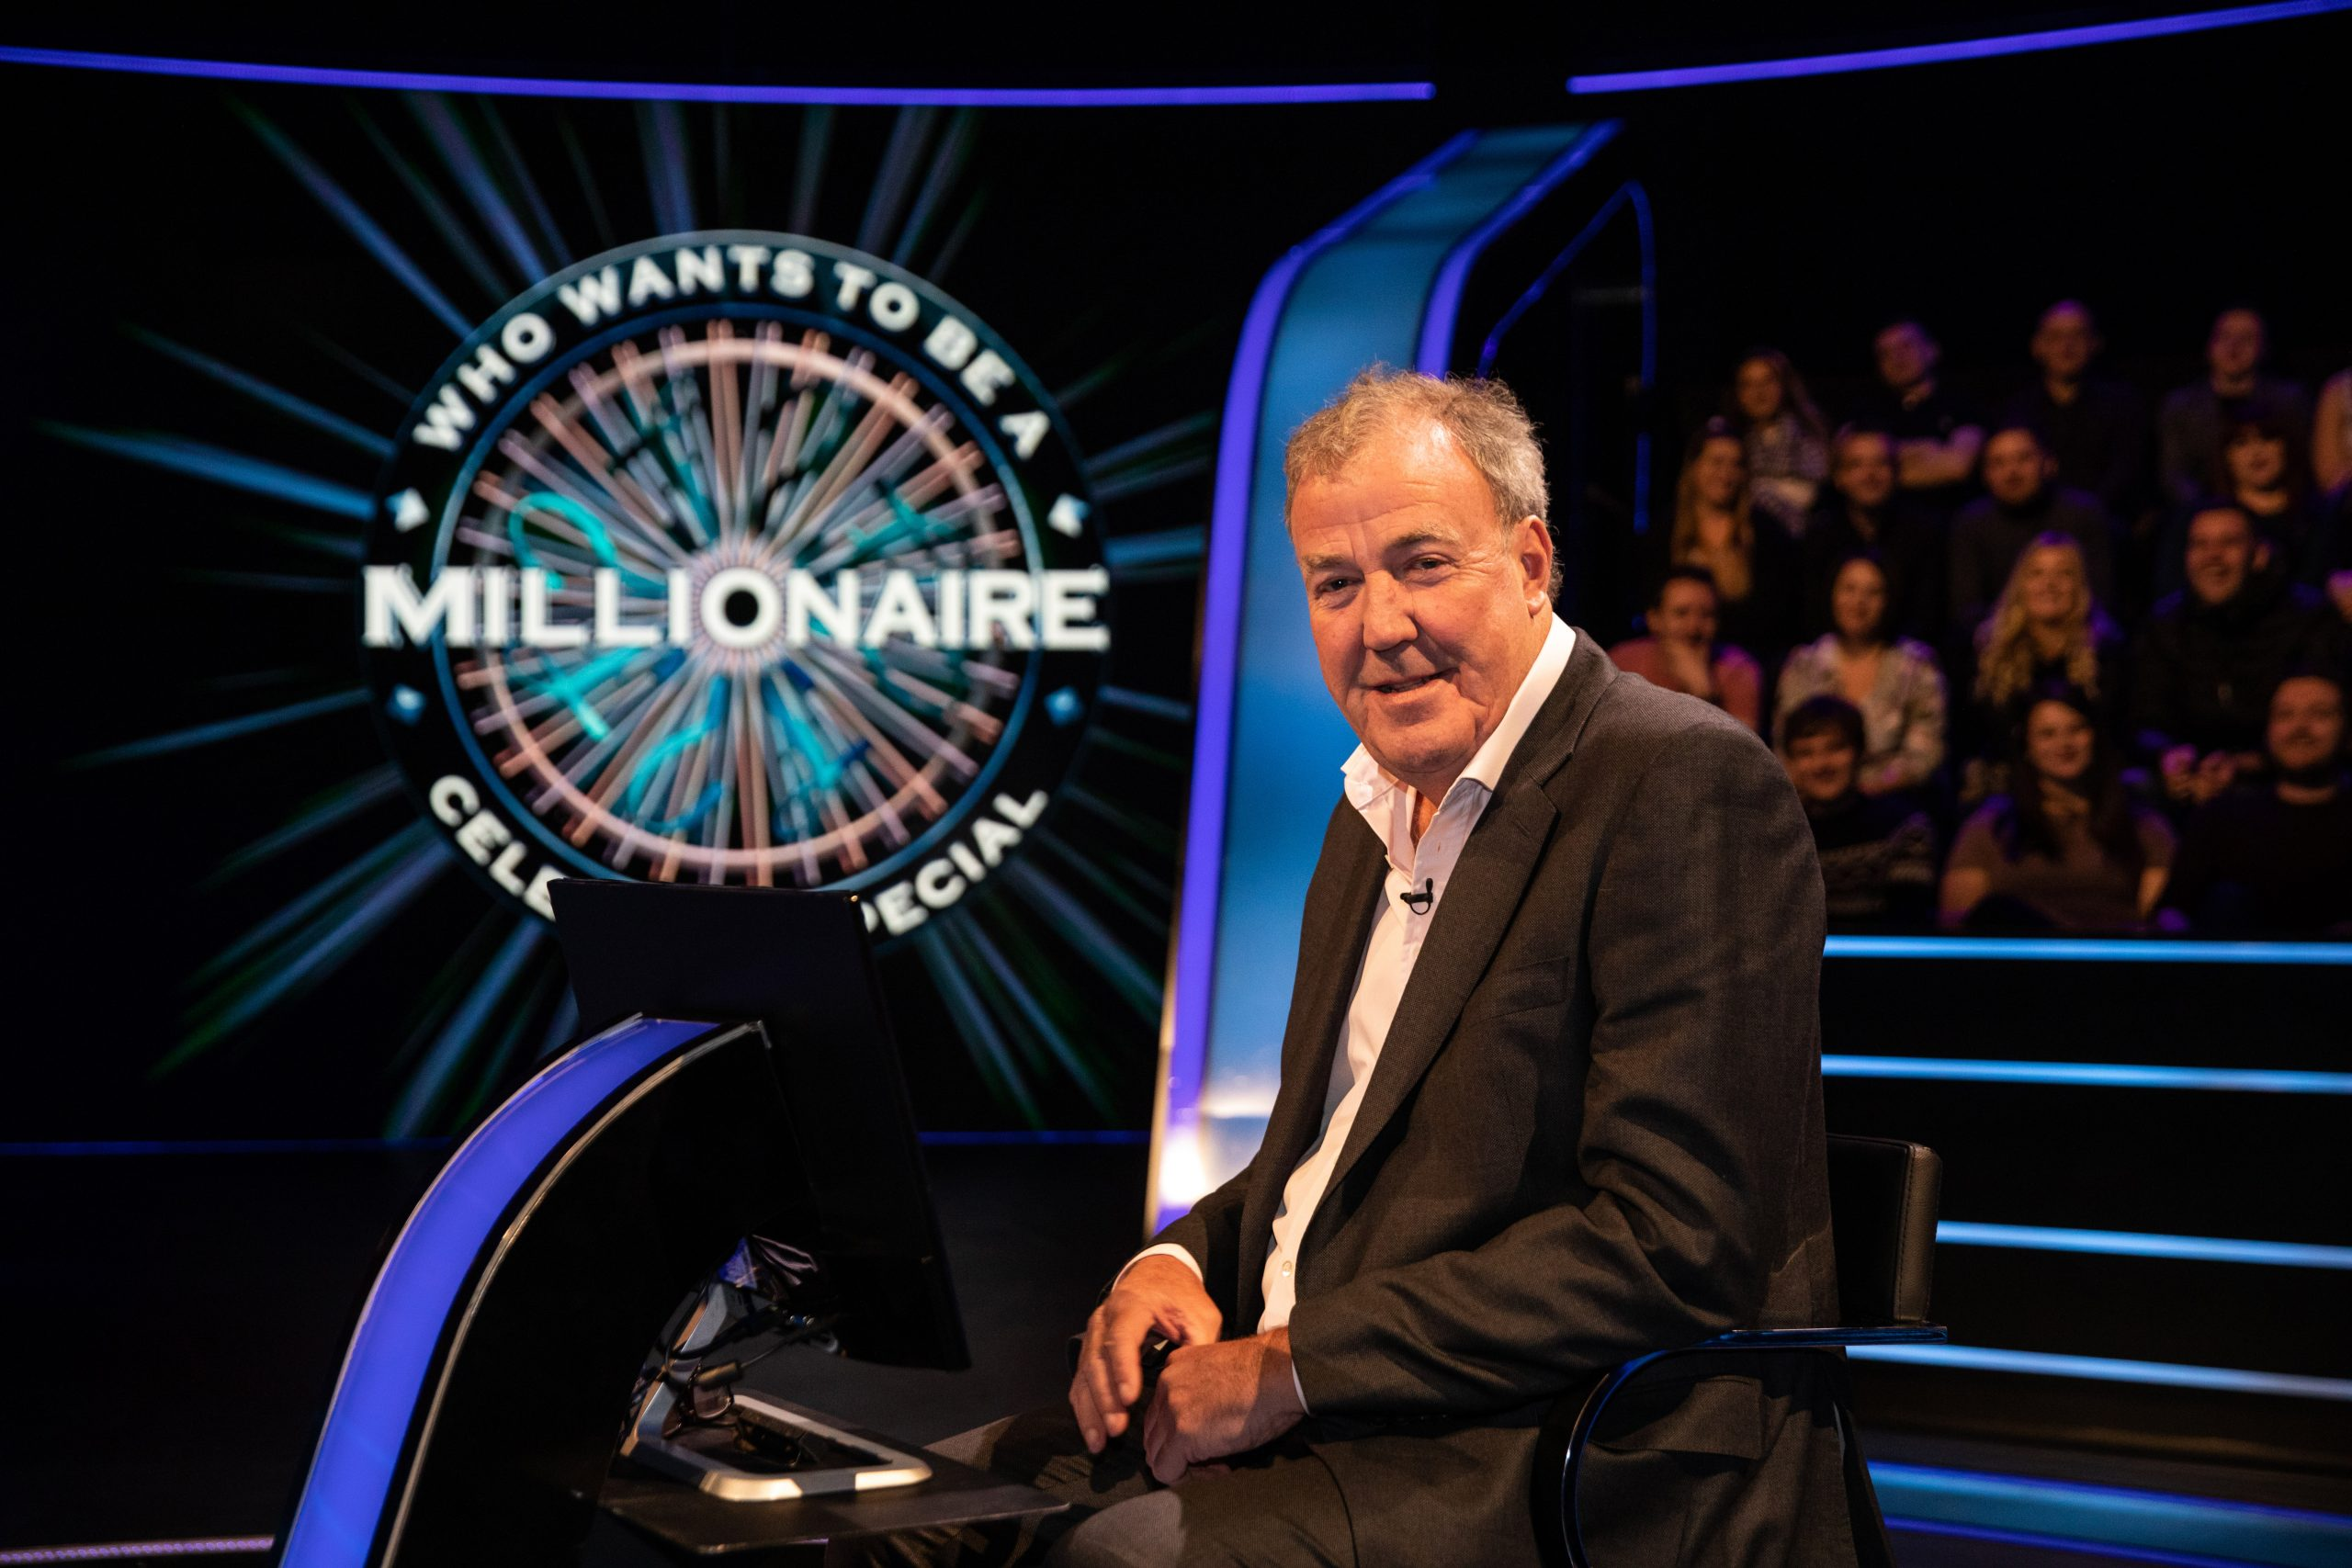 Who Wants To Be A Millionaire fans thrilled as Chaser Mark Labbett joins the show and doesn't know the answer